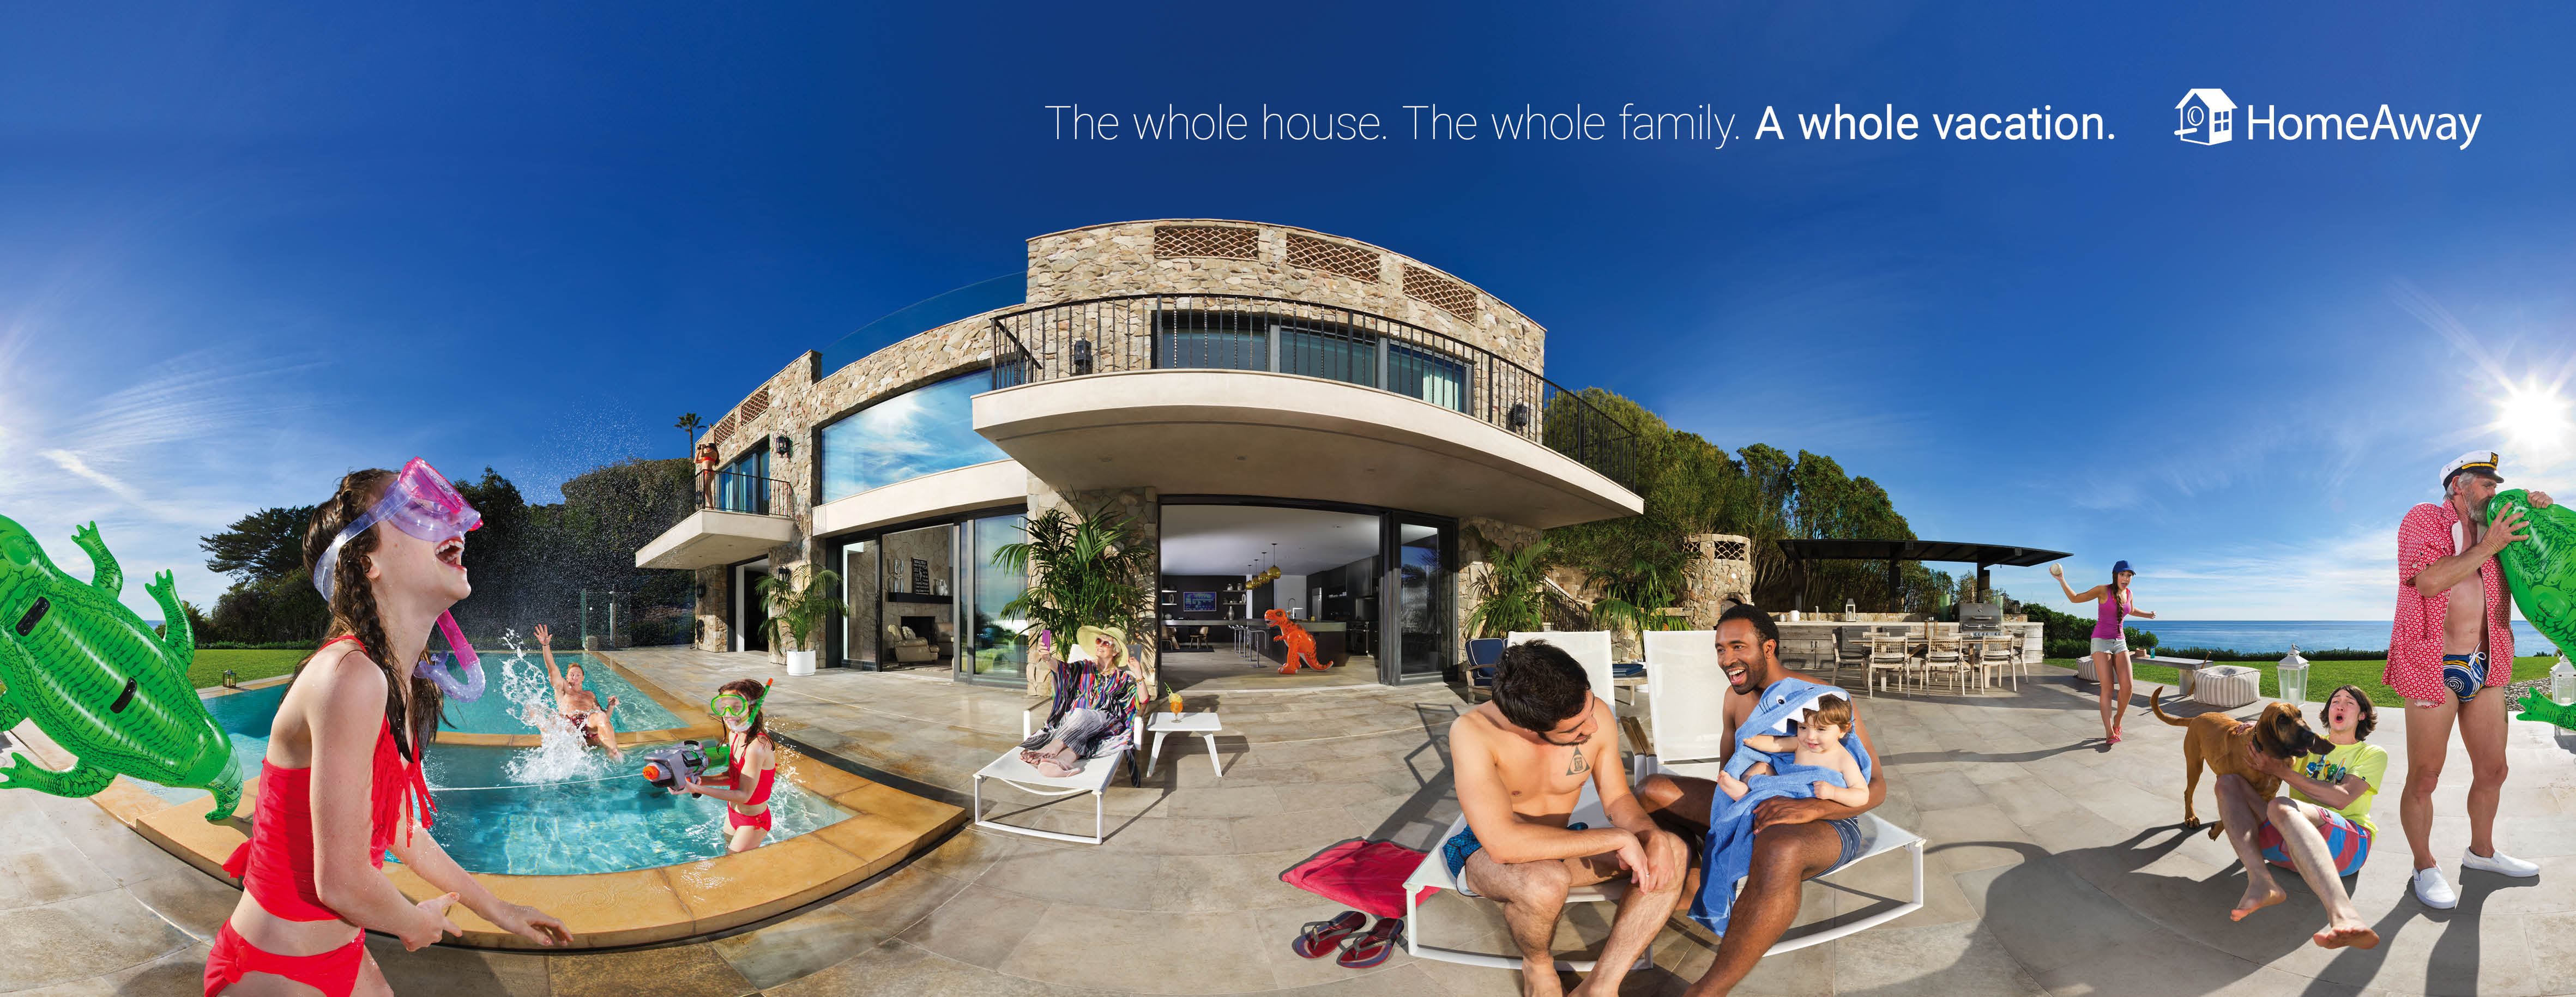 Seeking to Redefine the Family Vacation Experience ...